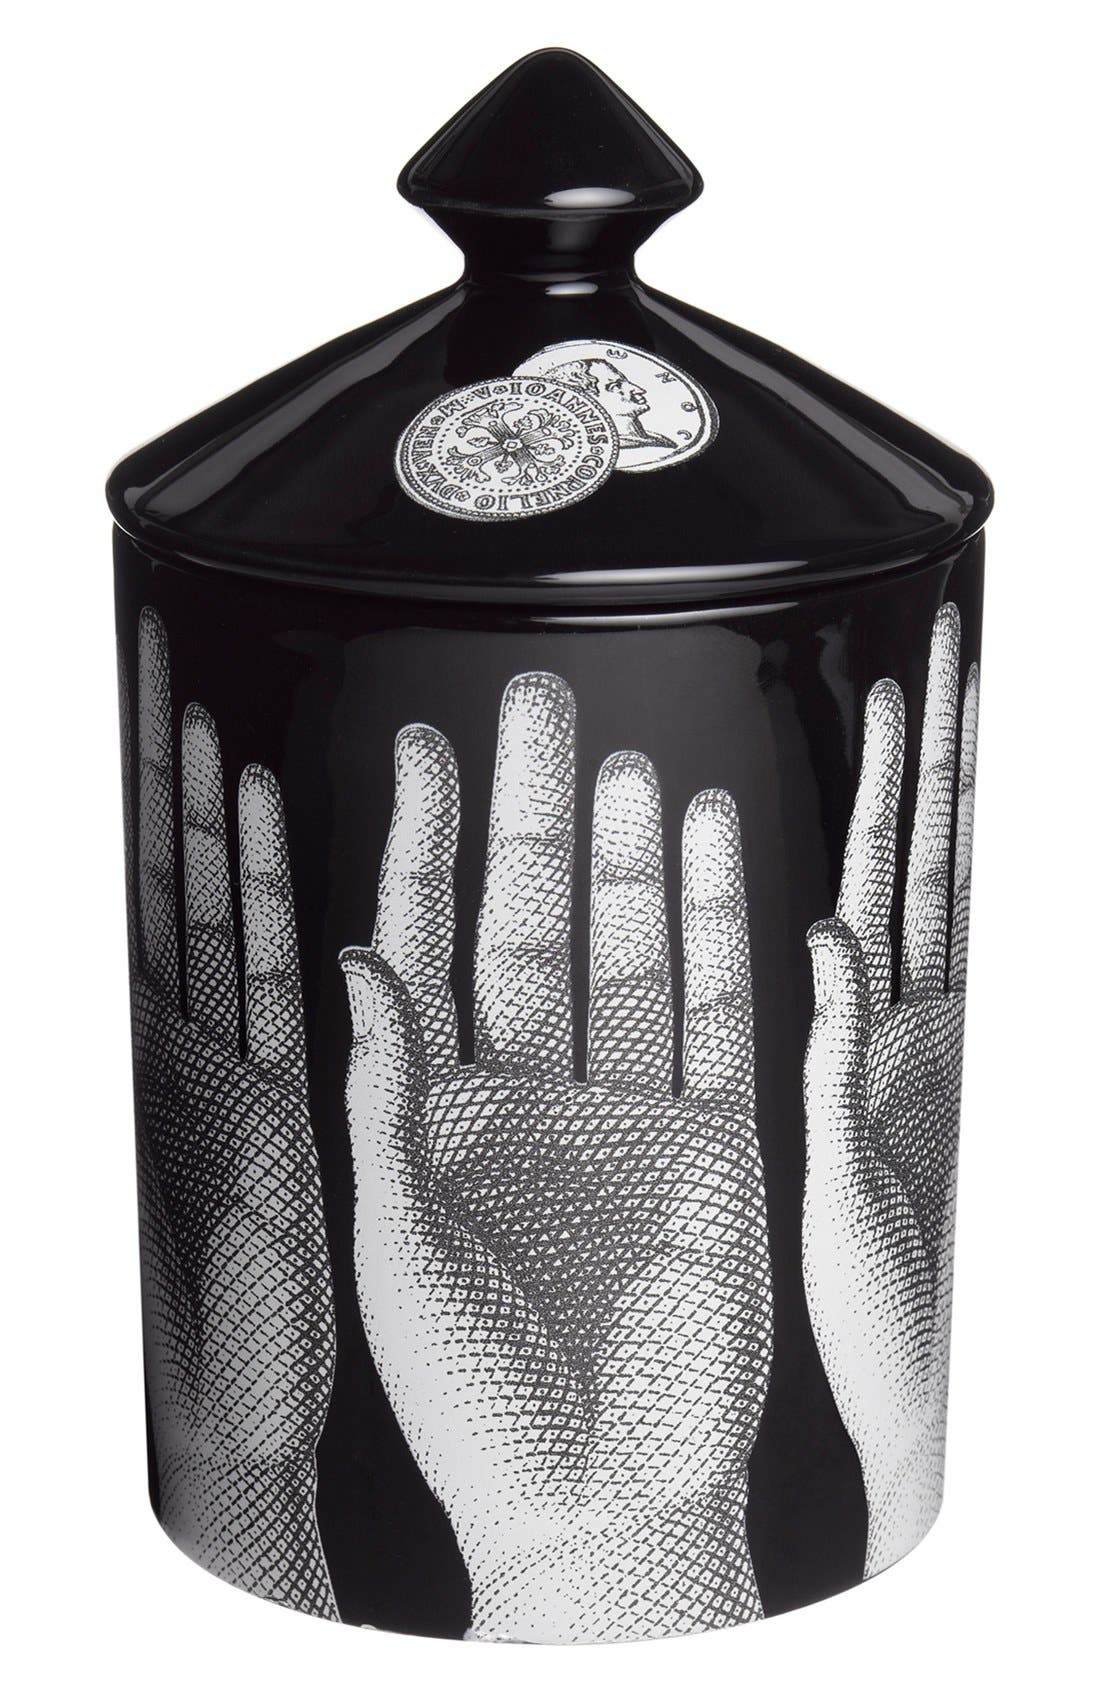 Alternate Image 1 Selected - Fornasetti 'Mani - Otto' Lidded Candle